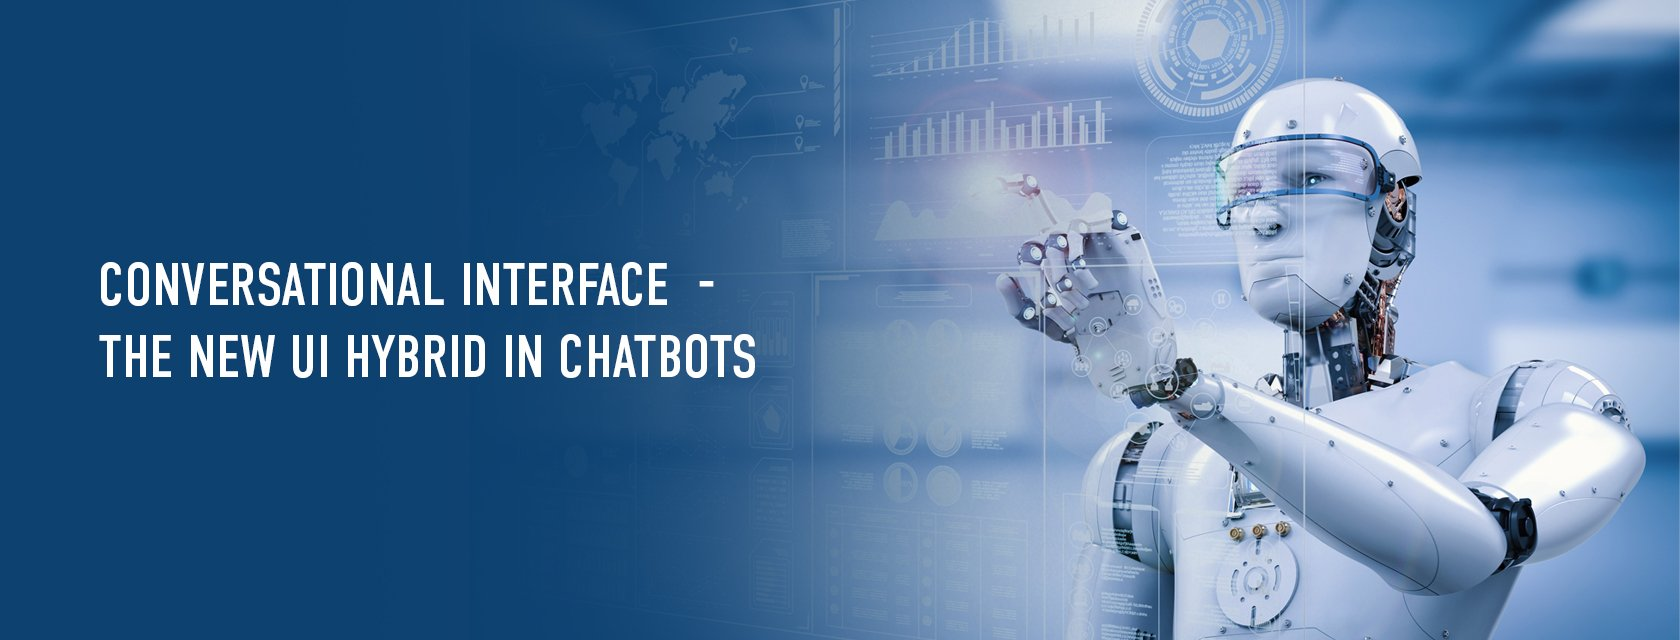 Conversational interface – Where UI is helping Chatbots better than AI to overcome early shortcomings